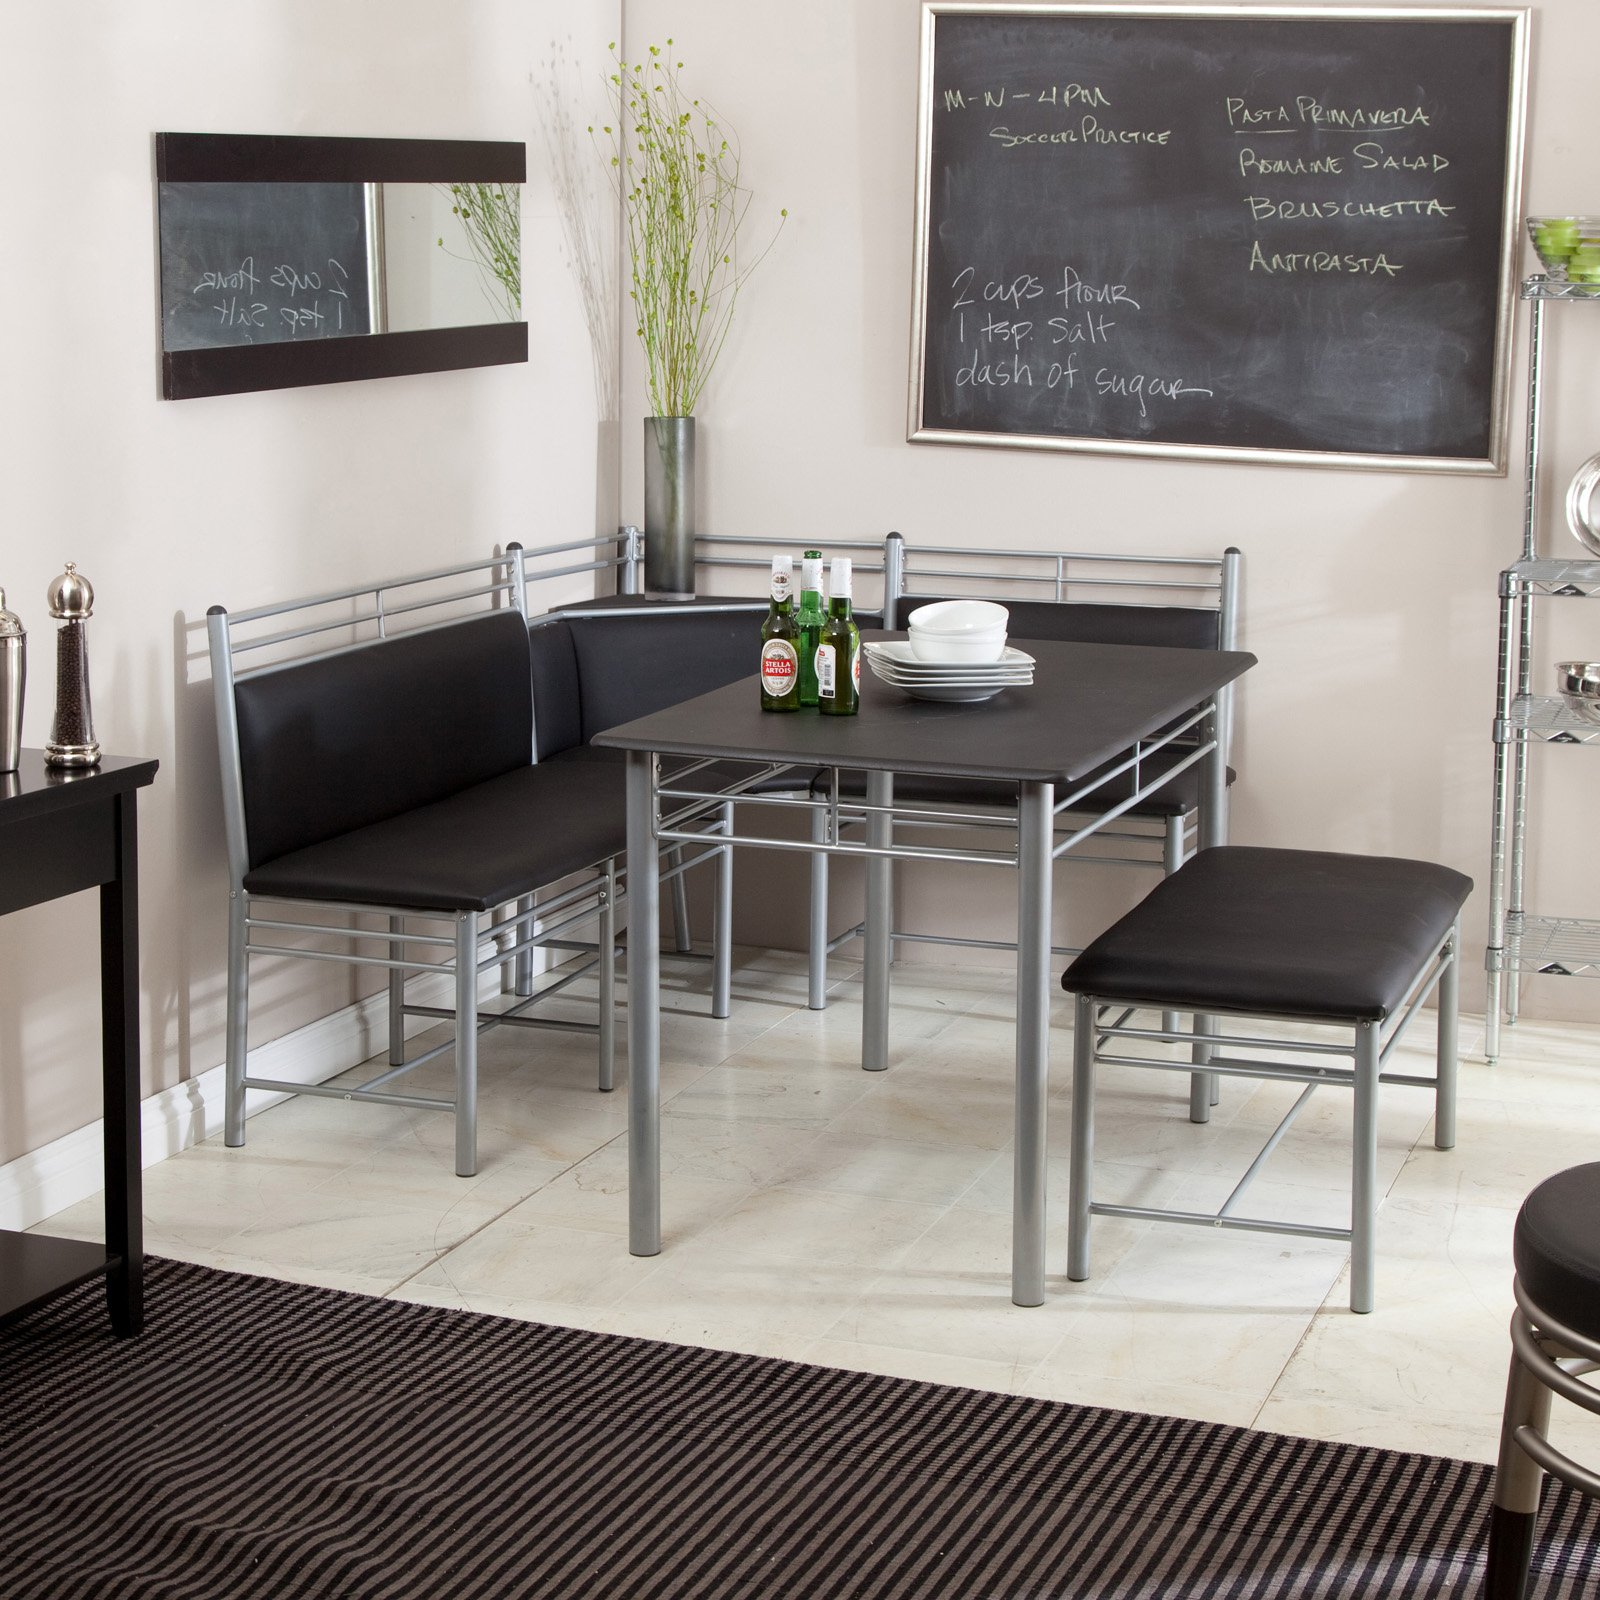 more than 50 unique dining table area design for small spaces